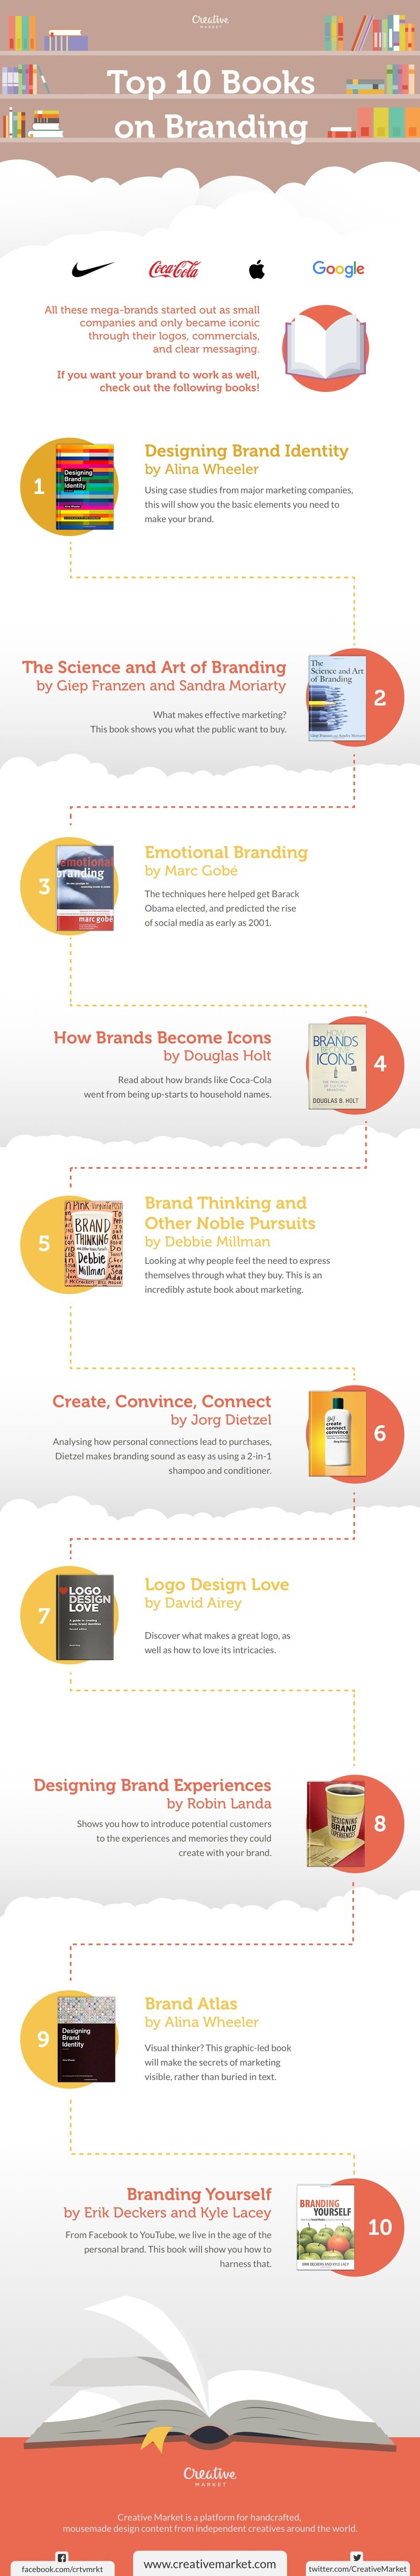 Top 10 Books on Branding - #infographic